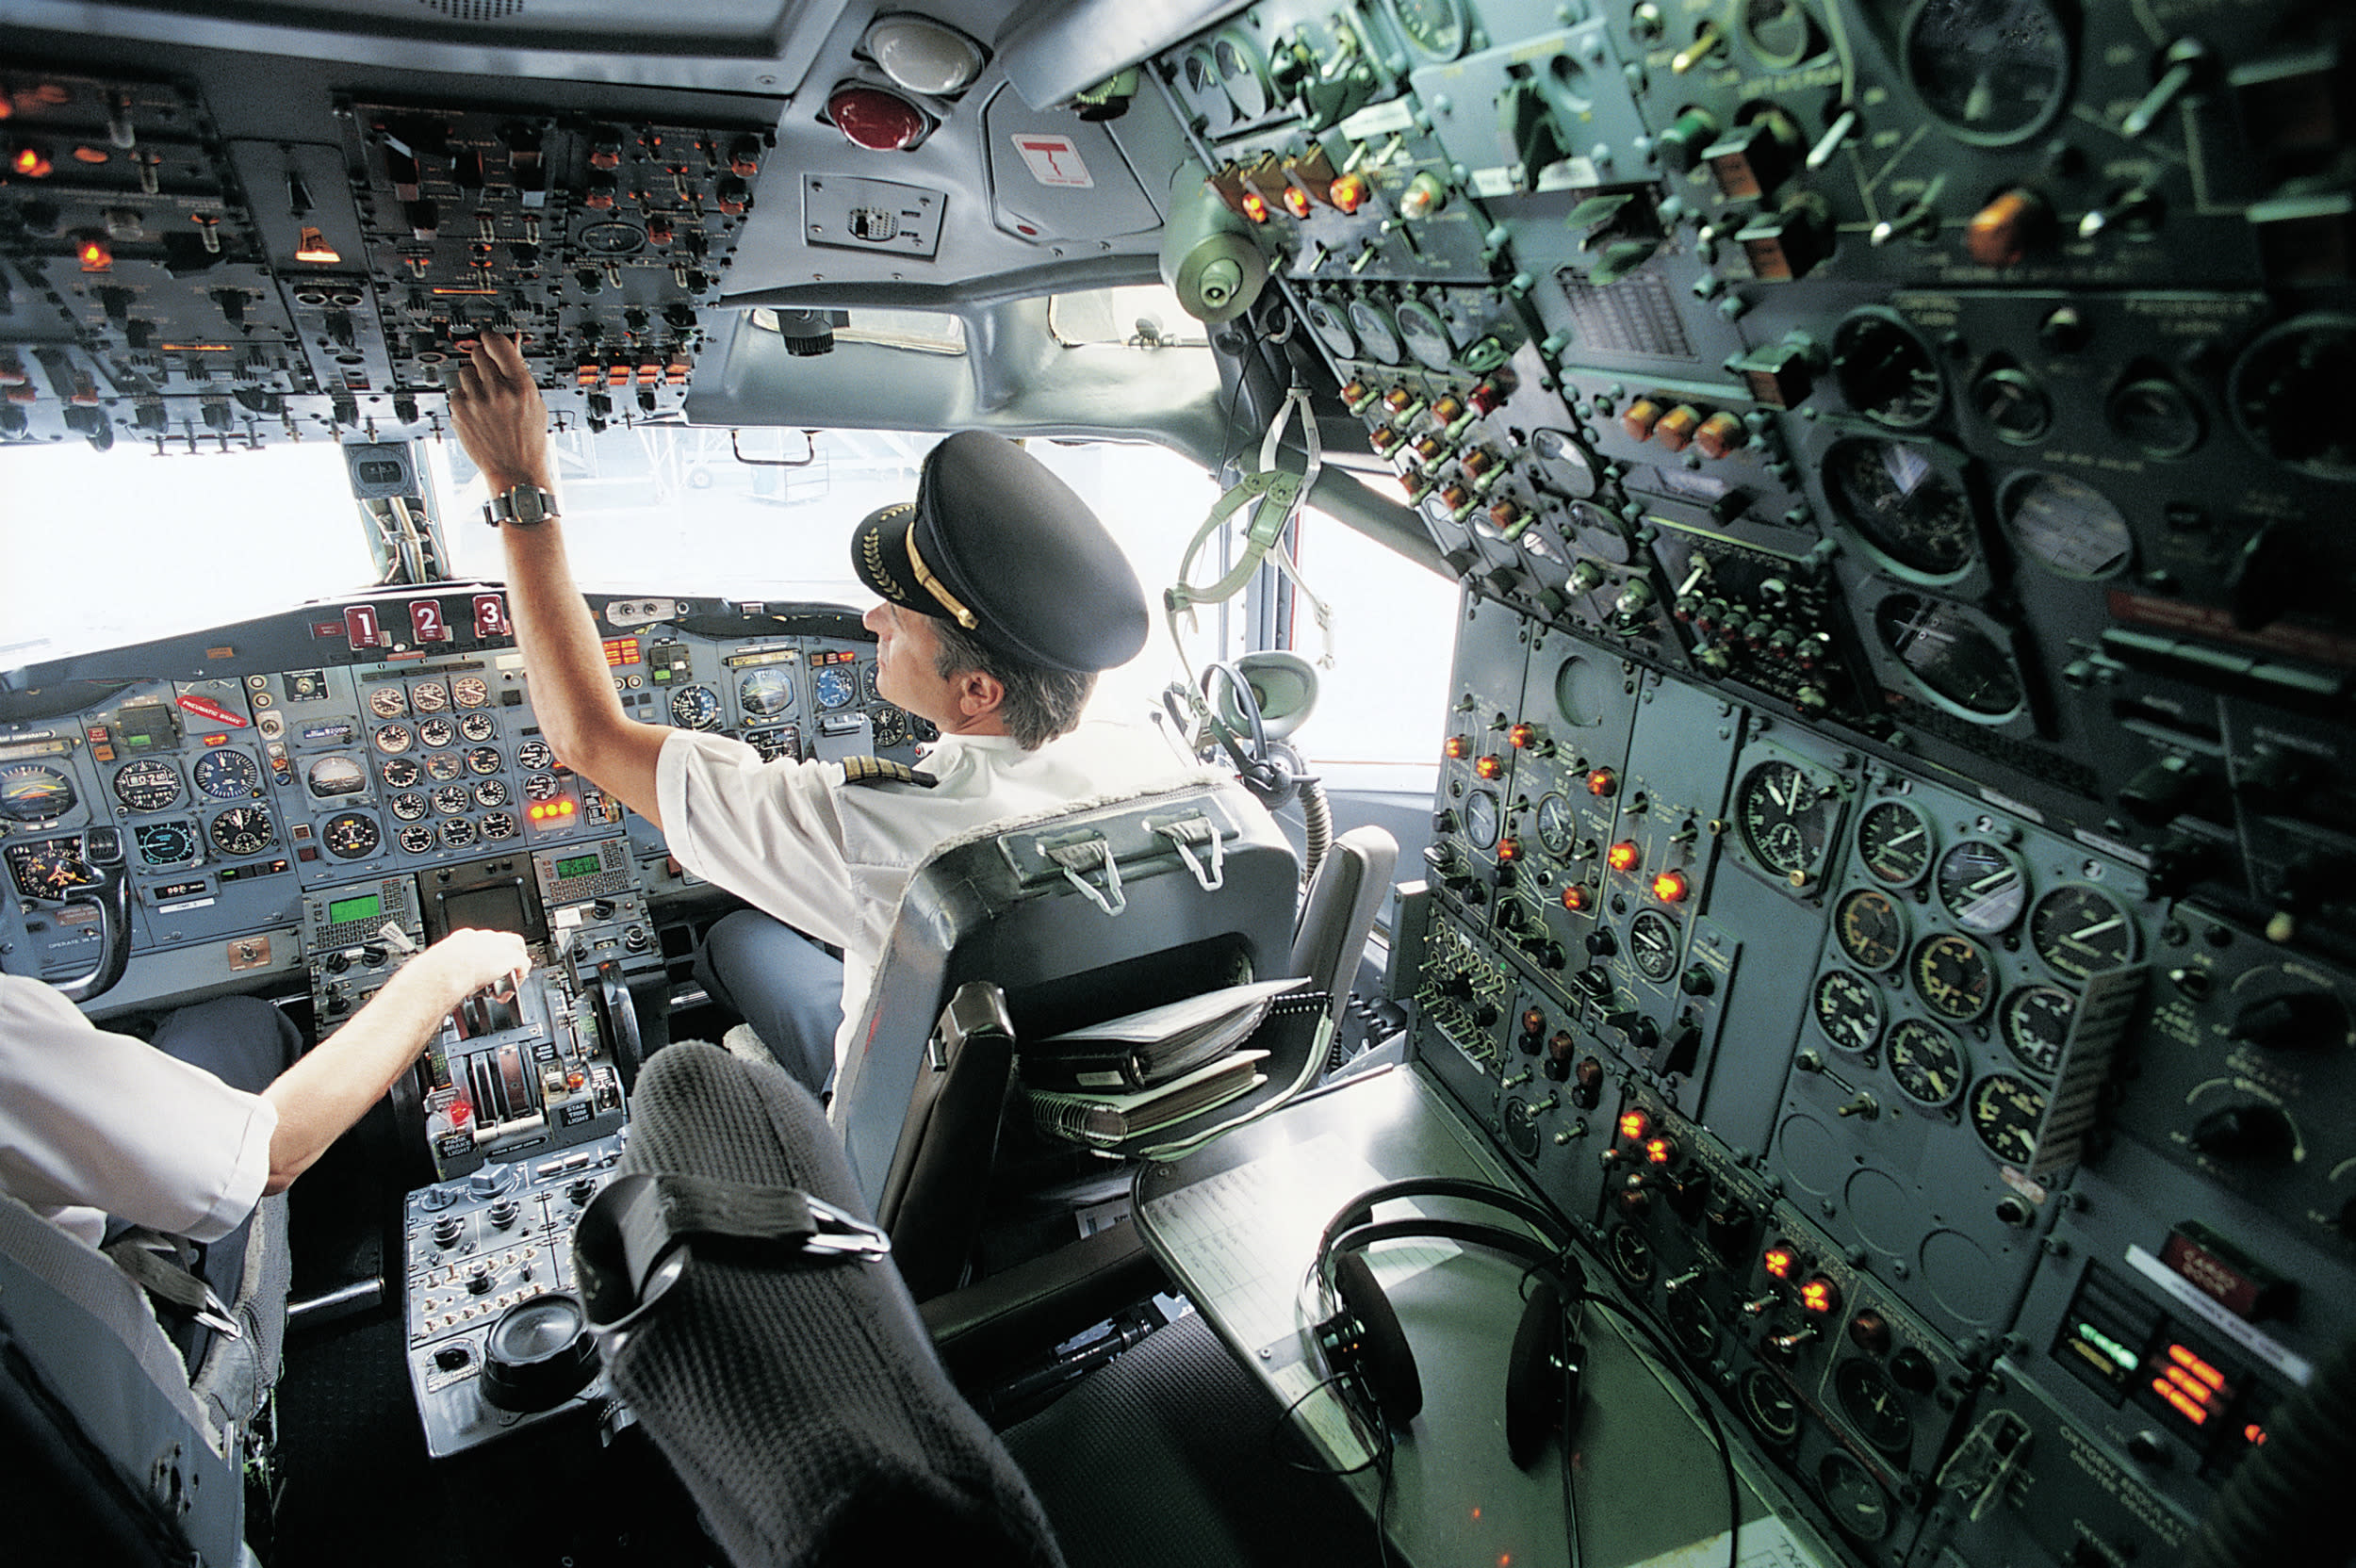 """<p>Flying high literally as well as metaphorically, pilots top the salary scale this year. There are various routes into the job, from university courses to airlines' own training schemes; private training will set you back as much as £50,000 to £60,000.</p>  <p>""""I most enjoy the variety of the job, working as a team, to a schedule, with the responsibility of safely transporting hundreds of people to their destination. I would advise aspiring pilots to thoroughly research training routes, understand the serious financial outlay required with no guarantee of a job after training and to consider other routes such as flight instruction.""""</p>  <p></p>  <p></p>"""